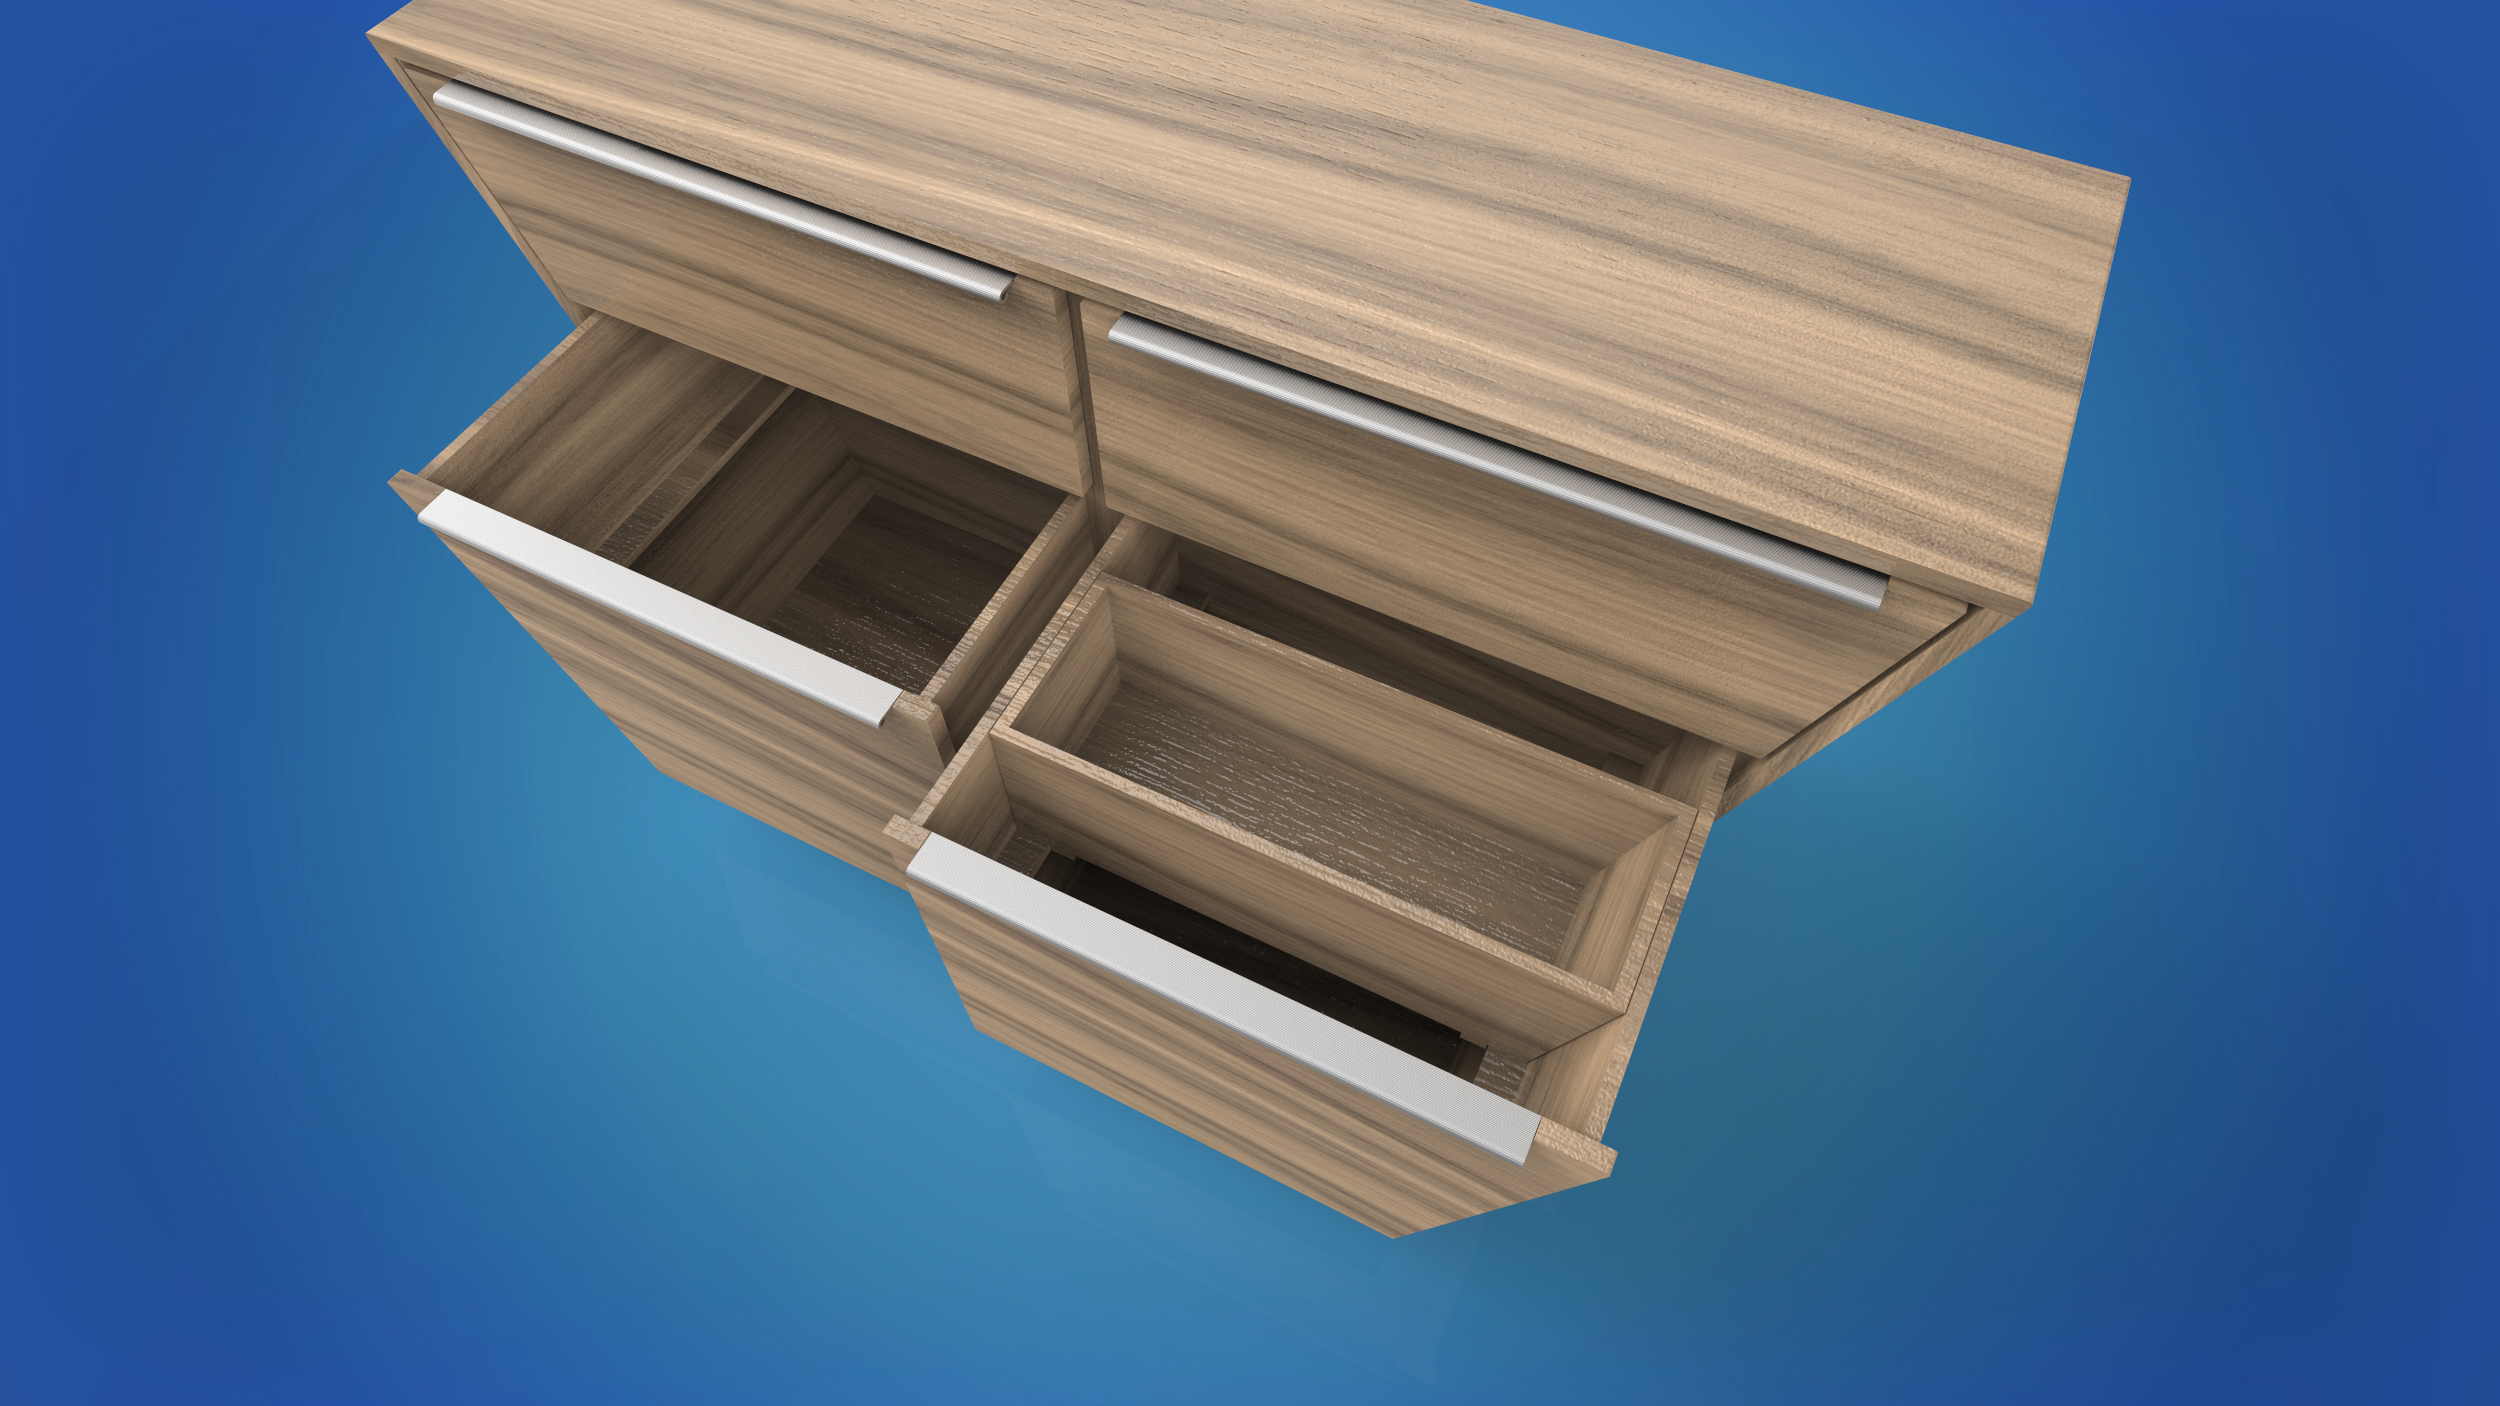 The deeper lower drawers are divide by a adjustable inner shelf. This division keeps things neat and useful items handy.